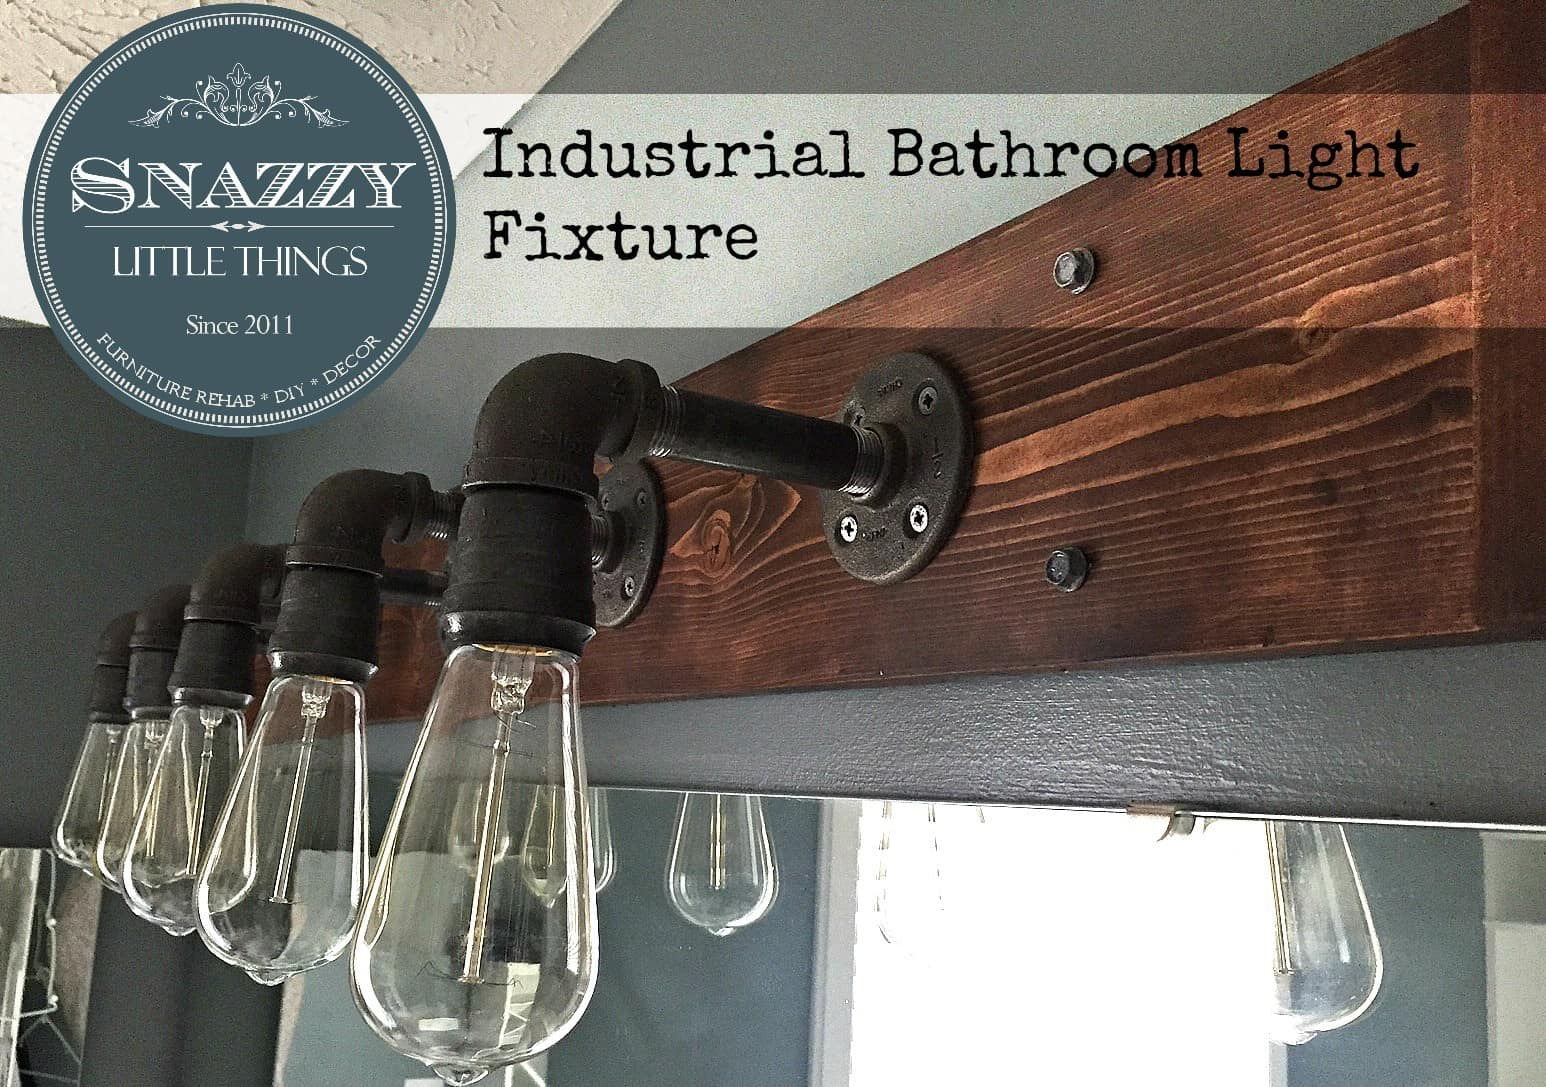 Industrial Bathroom Light